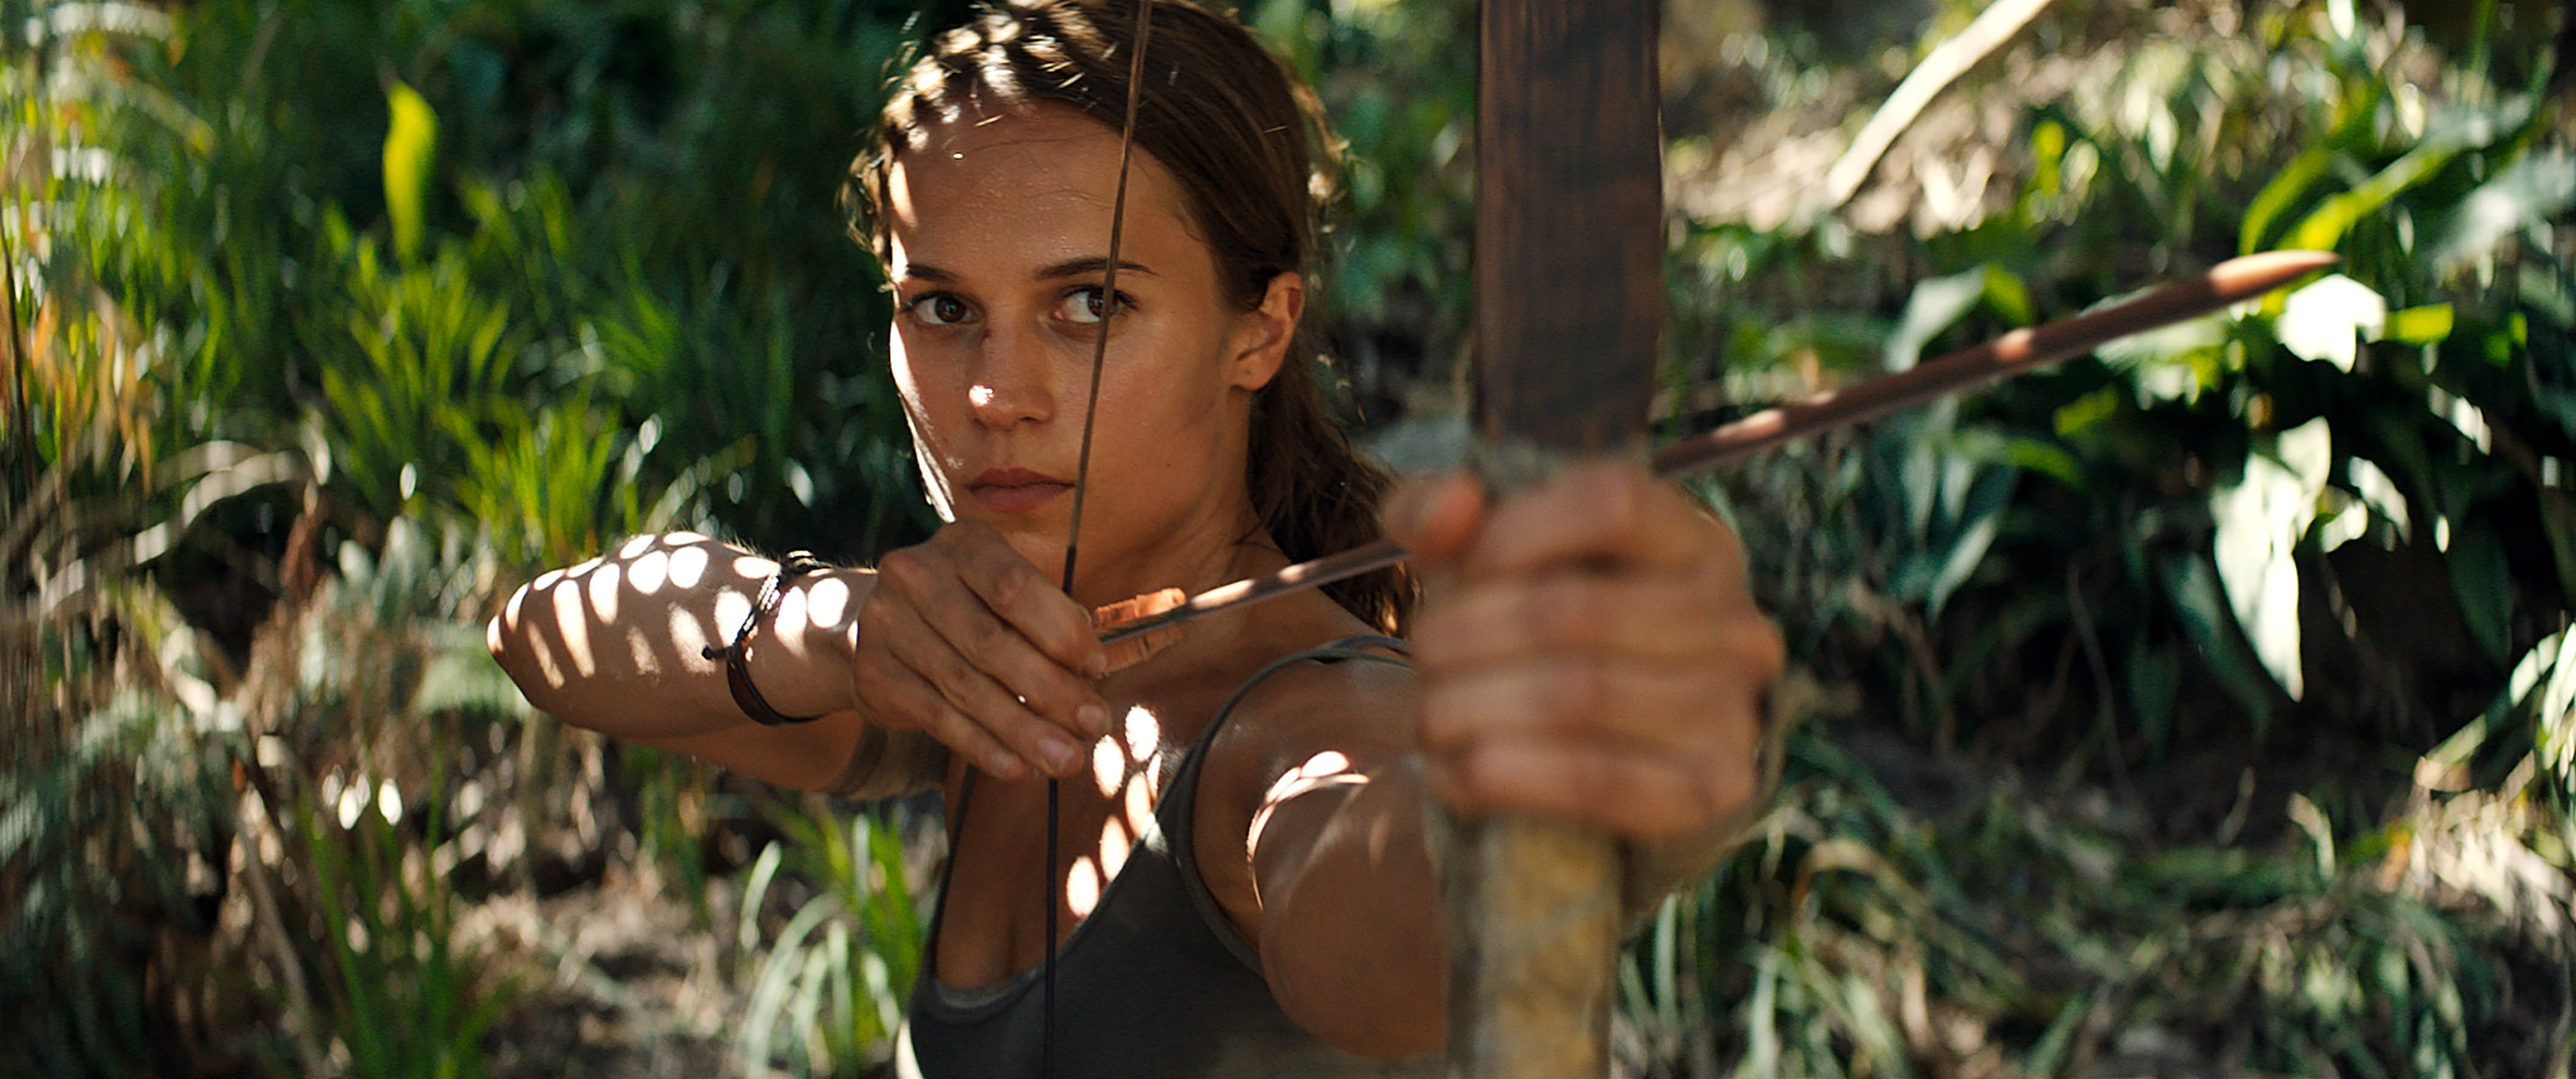 Tomb Raider 2018 Alicia Vikander, Hd Movies, 4K Wallpapers -4433